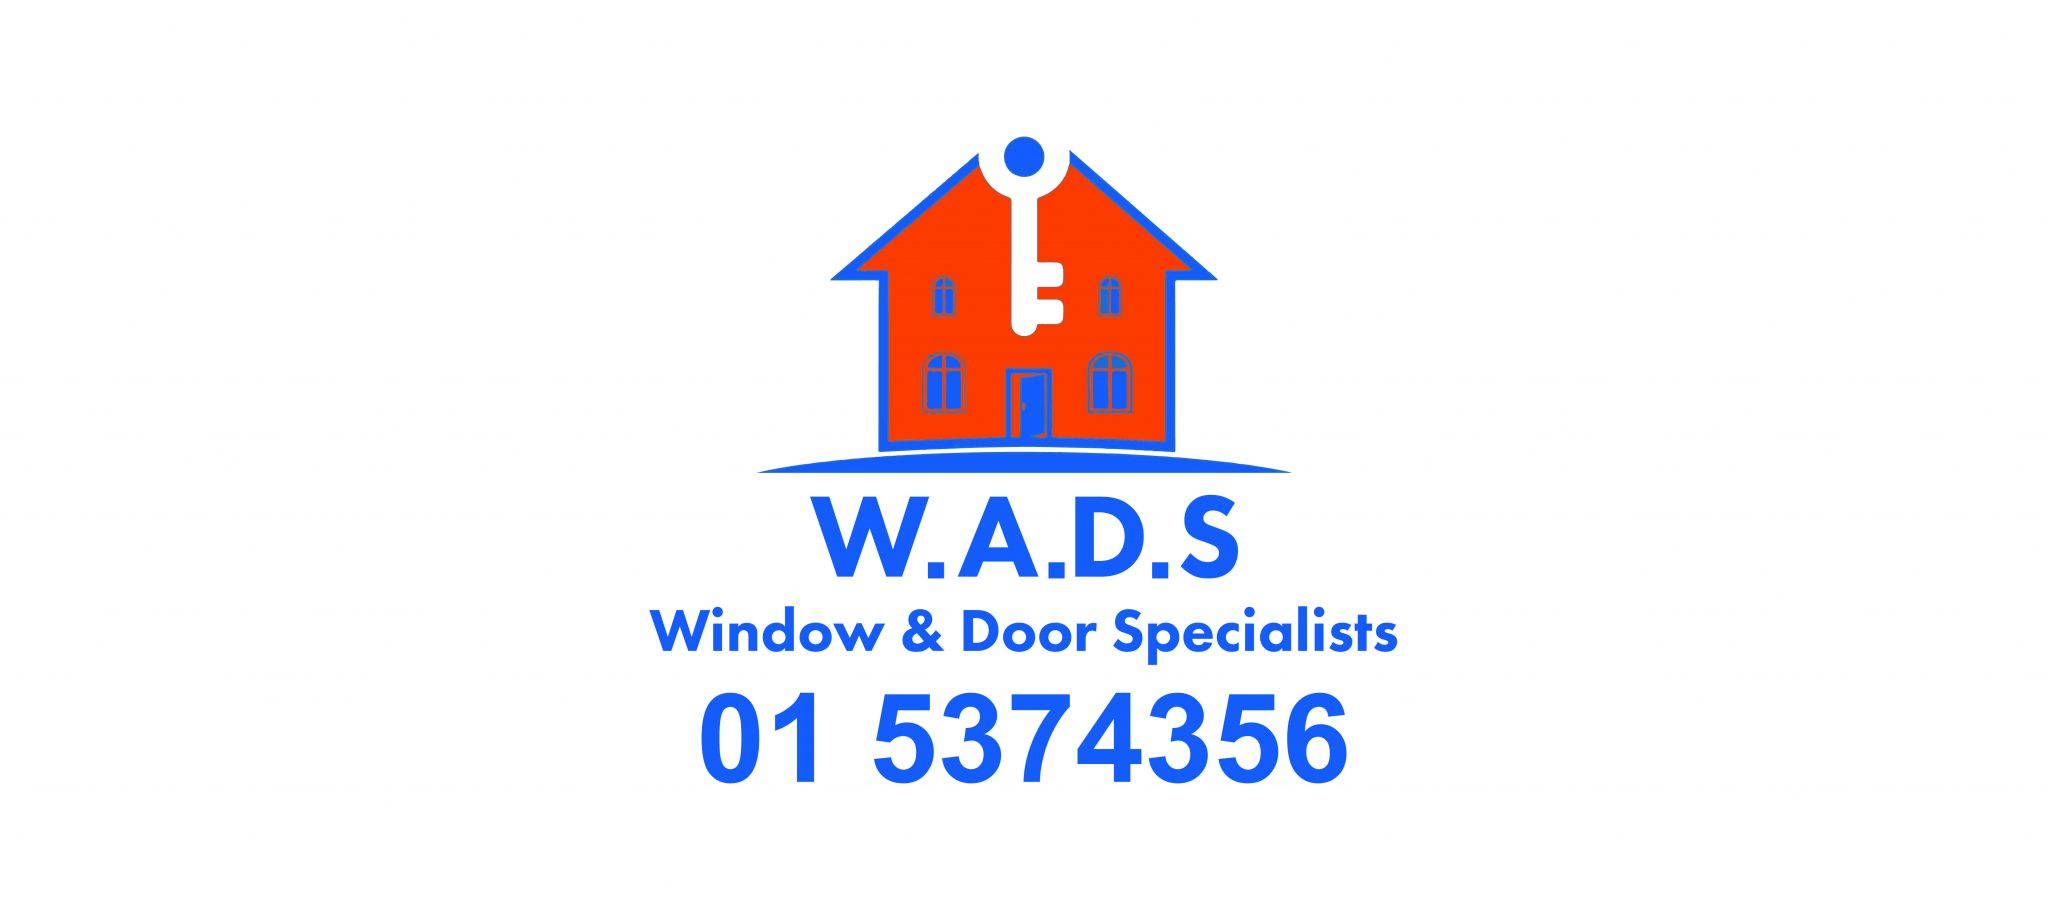 WADS Window & Door Specialists